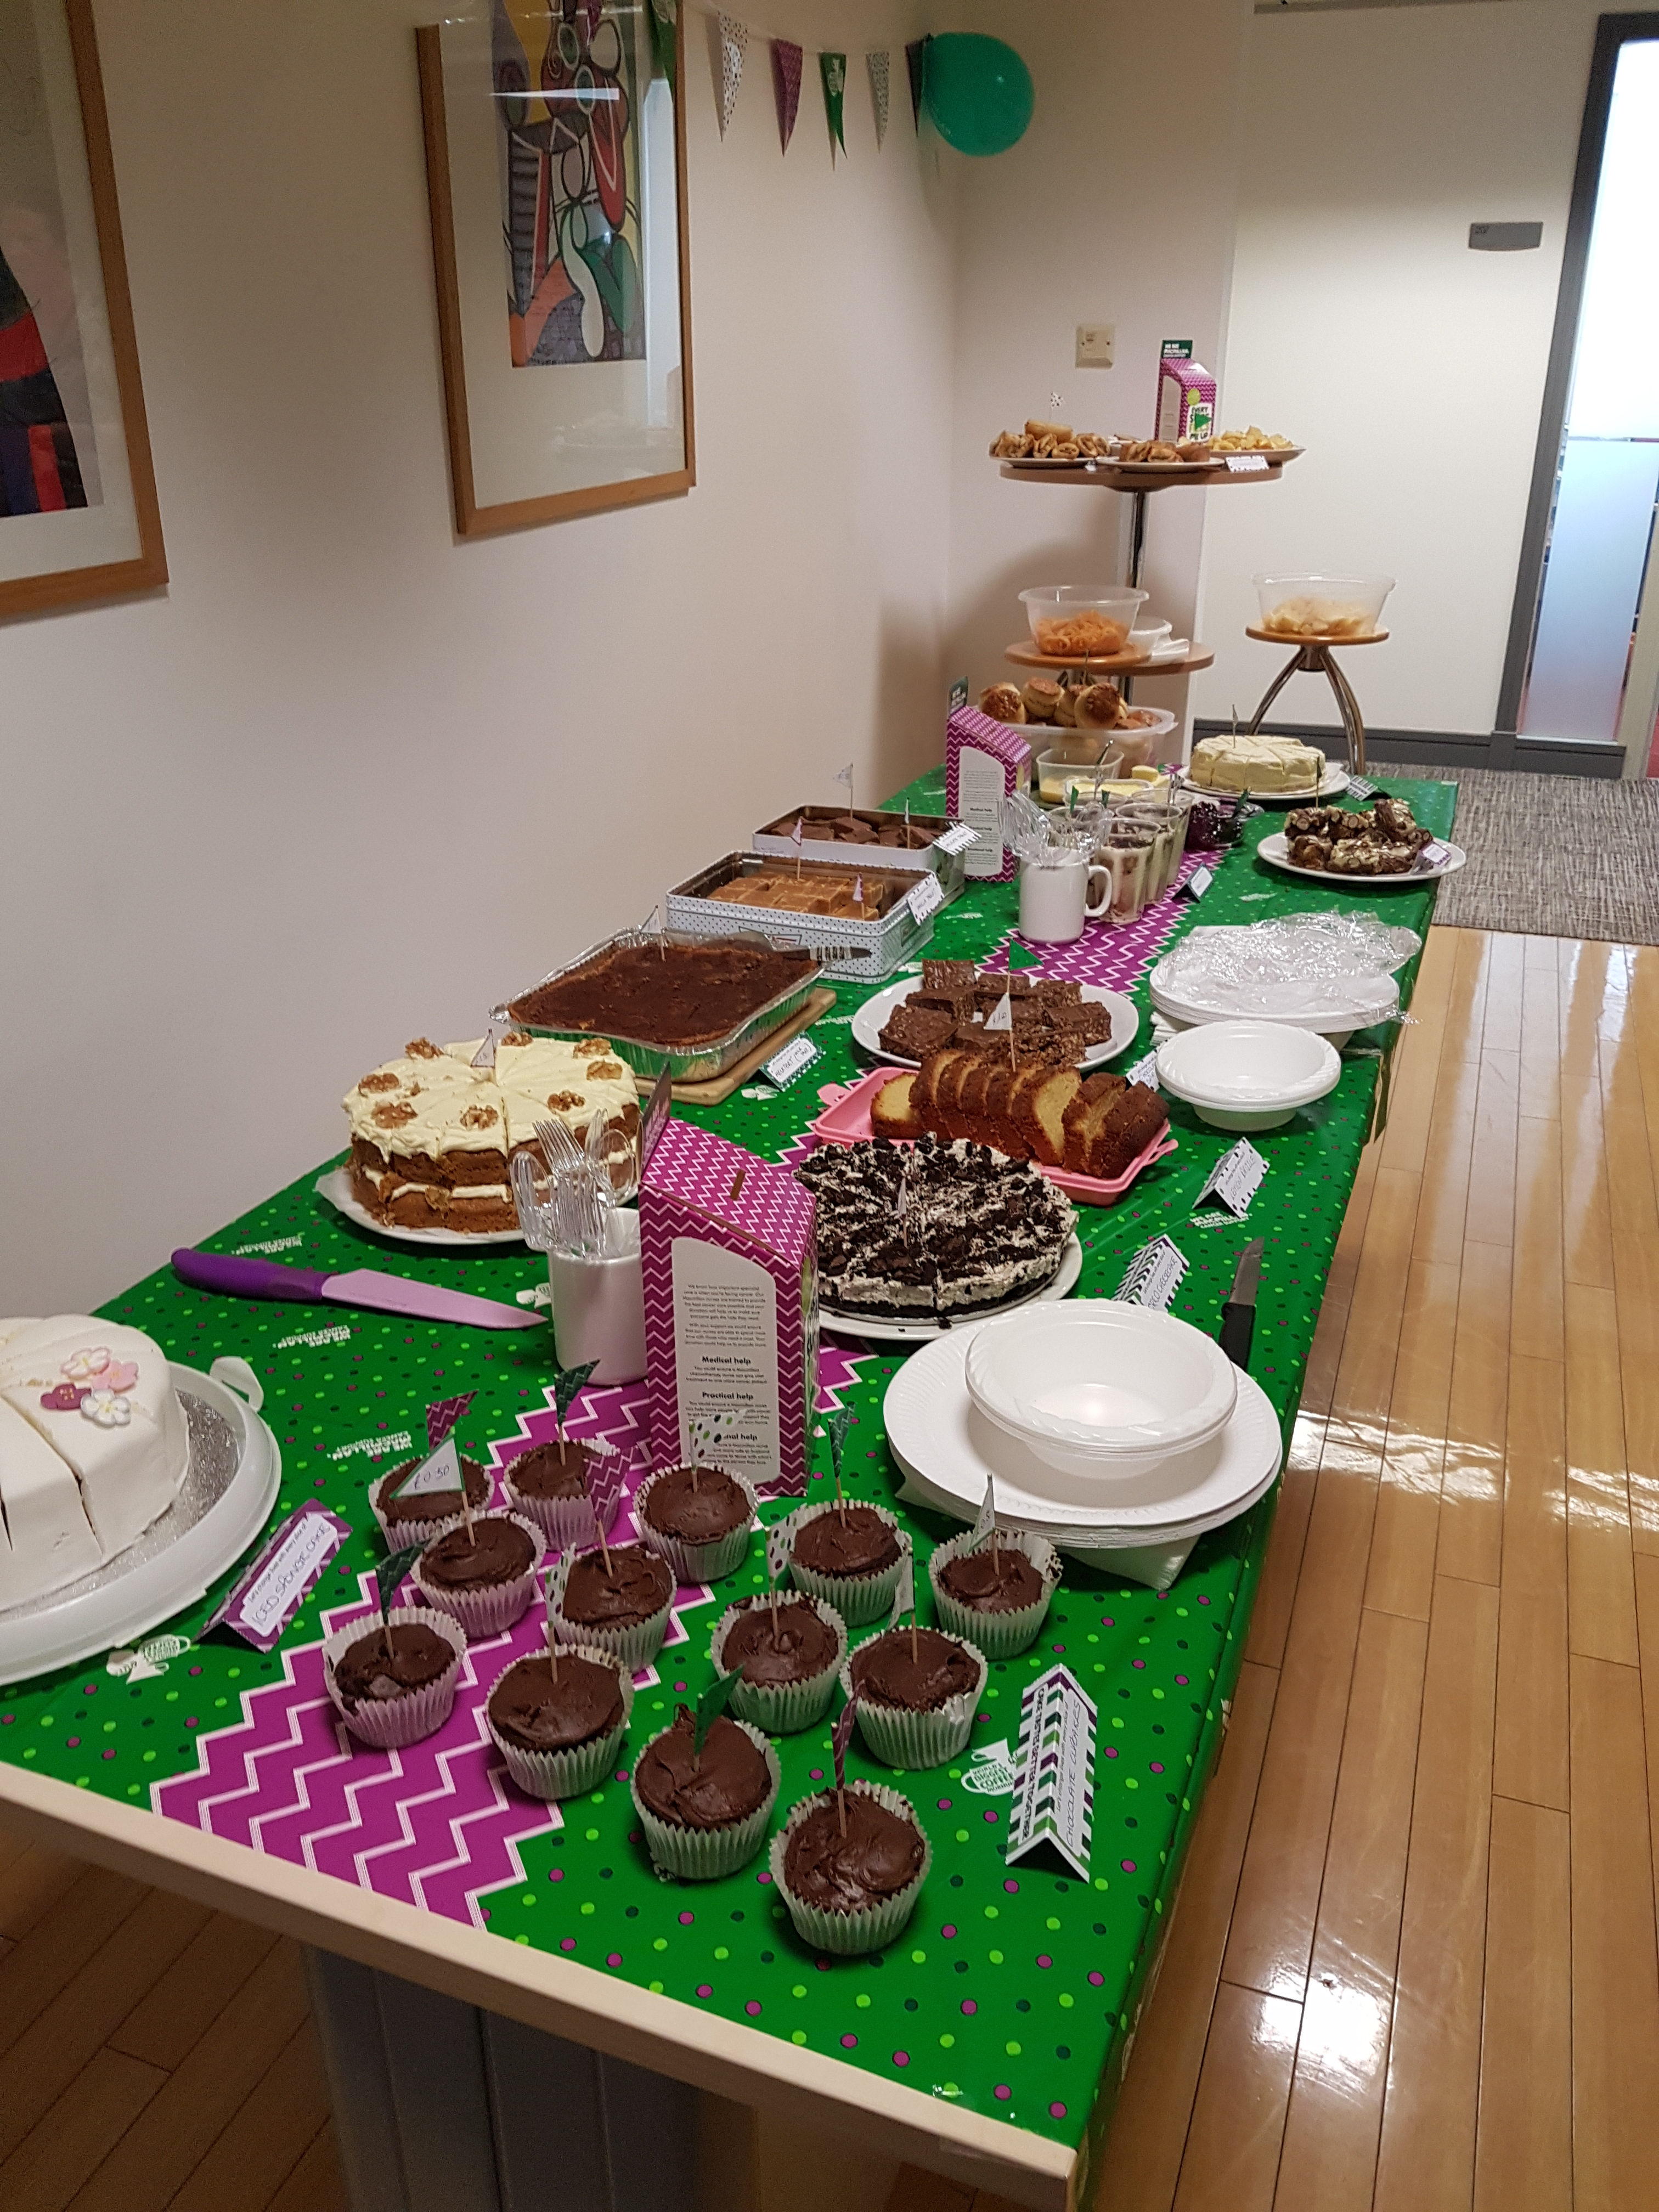 Table with the cakes that the staff made